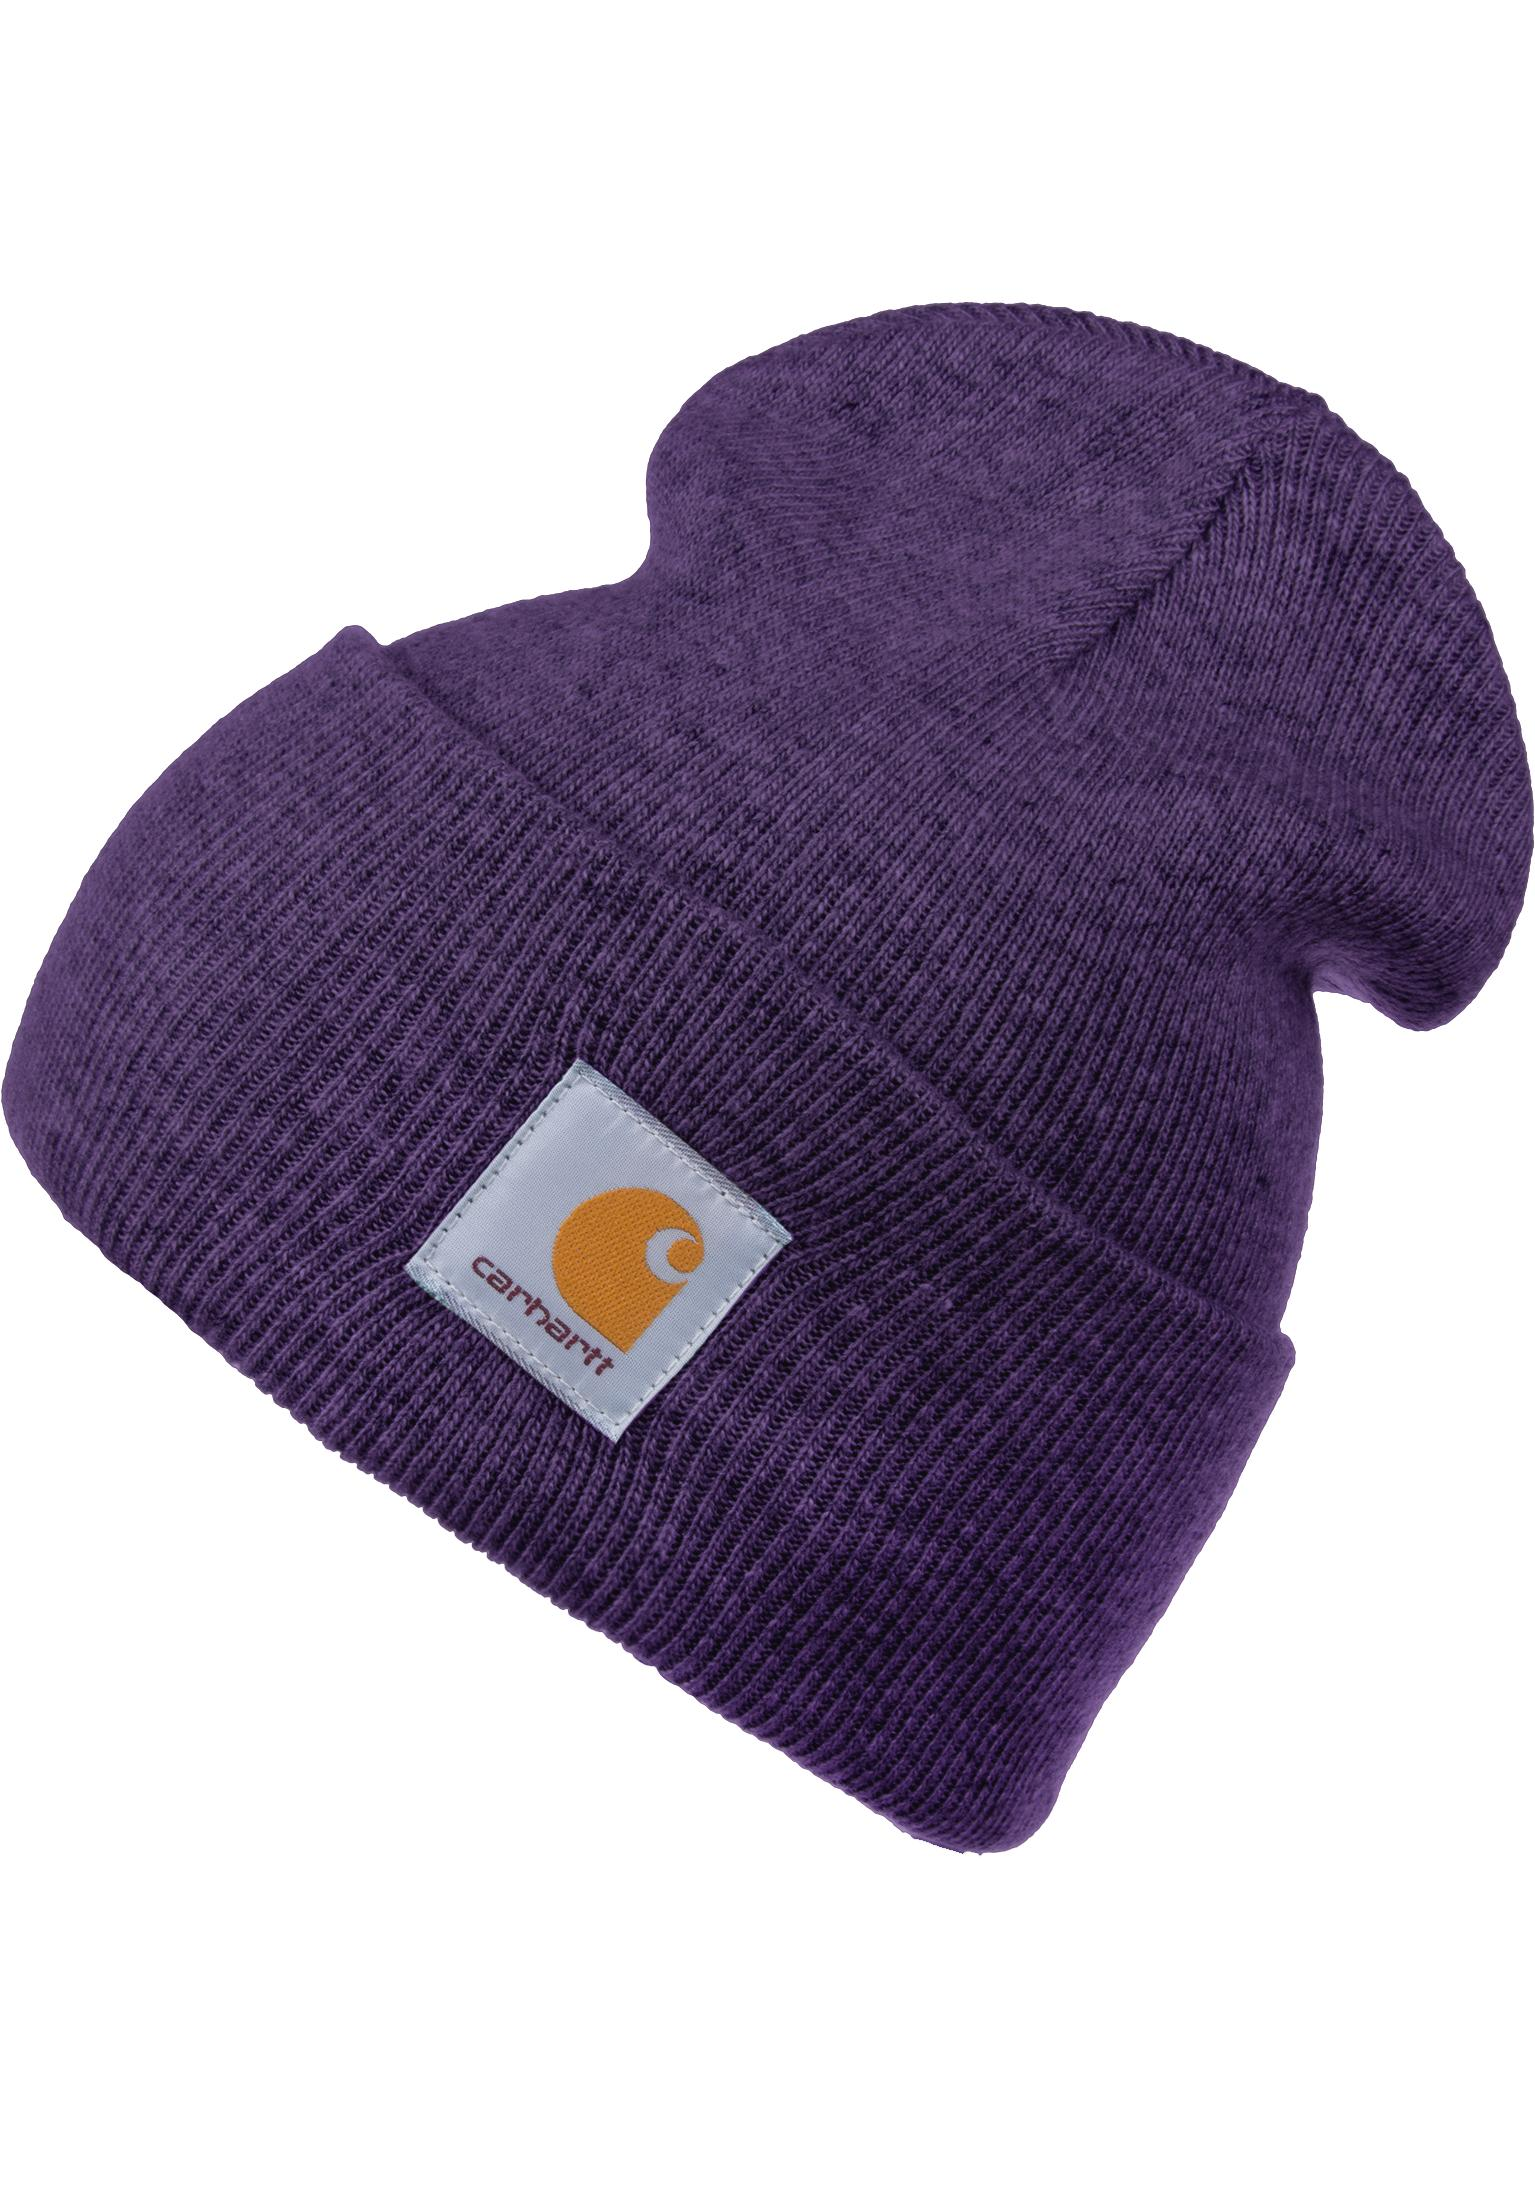 472e58b1561 Acrylic Watch Hat Carhartt WIP Beanies in frostedviola-heather for Men